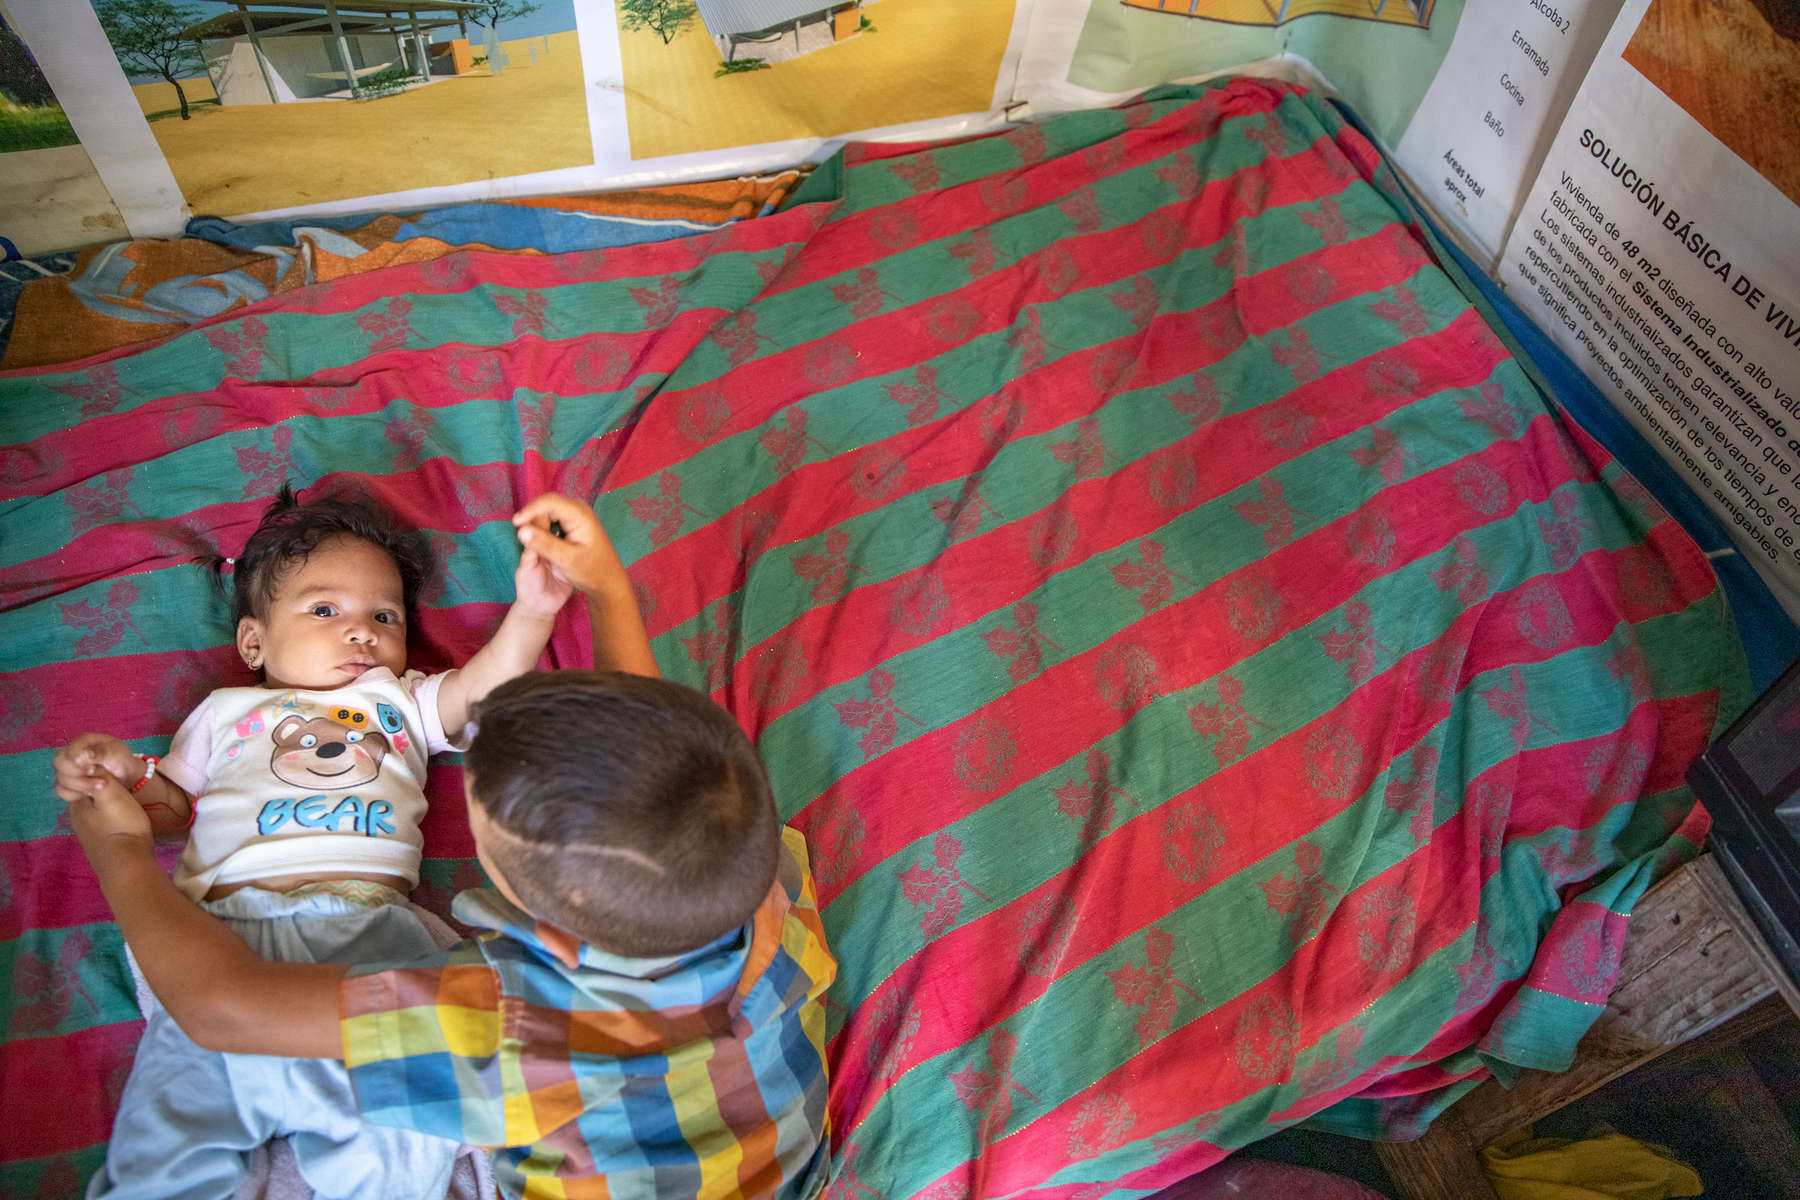 Eduard, 6, lies on a bed with his 3 month-old sister Fabiola in his family's shack. They live with their three siblings, and parents Jose Eduardo Monasterio Castañeda and Ana Maria. Jose and Ana Maria withstood the crisis in Venezuela for as long as they could, but when their situation grew so desperate that they were drinking glasses of water for dinner, they made the painful decision to leave their home and seek survival in Colombia. More than 1 million Venezuelans have fled to Colombia, fleeing economic, governmental and social collapse that has plunged the majority of the population into poverty, joblessness and near starvation. Many, like Jose and Ana Maria, are funneling into communities that already struggled with poverty and lack of opportunity, and resources are at a breaking point. Jose and Ana Maria now live with their five children in a small room at the back of another house along a busy street in Riohacha. They earn money selling small goods and mobile phone minutes on the street where they live, but the income is not enough and Jose worries about his children's future. Mercy Corps is distributing emergency cash to help vulnerable Venezuelans in Colombia meet their urgent needs, including food, medicine and shelter. Ana Maria was pregnant with 3-month-old Fabiola when the family received their cash disbursement from Mercy Corps, and the money allowed her to get medical care for the birth. They say they would have had no way to go to the hospital without the assistance. The family also purchased essential household items for their shelter.